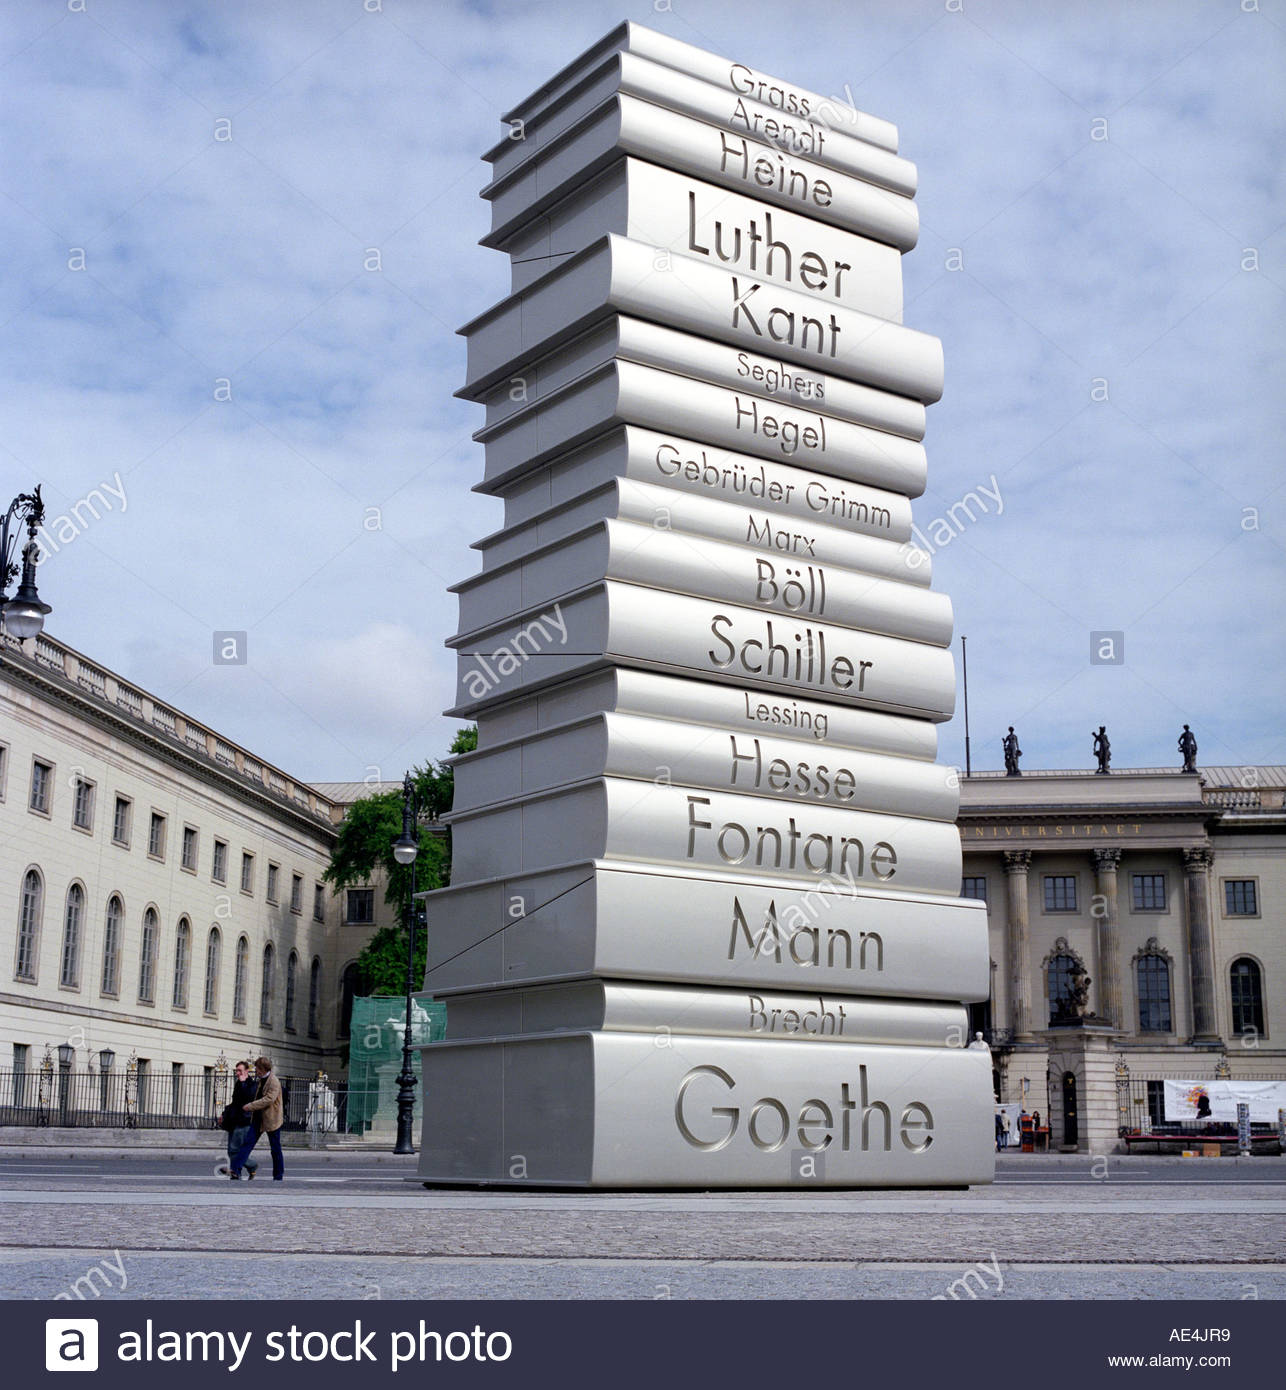 The sculpture of Modern Book Printing in Berlin . June 2006 Stock Photo